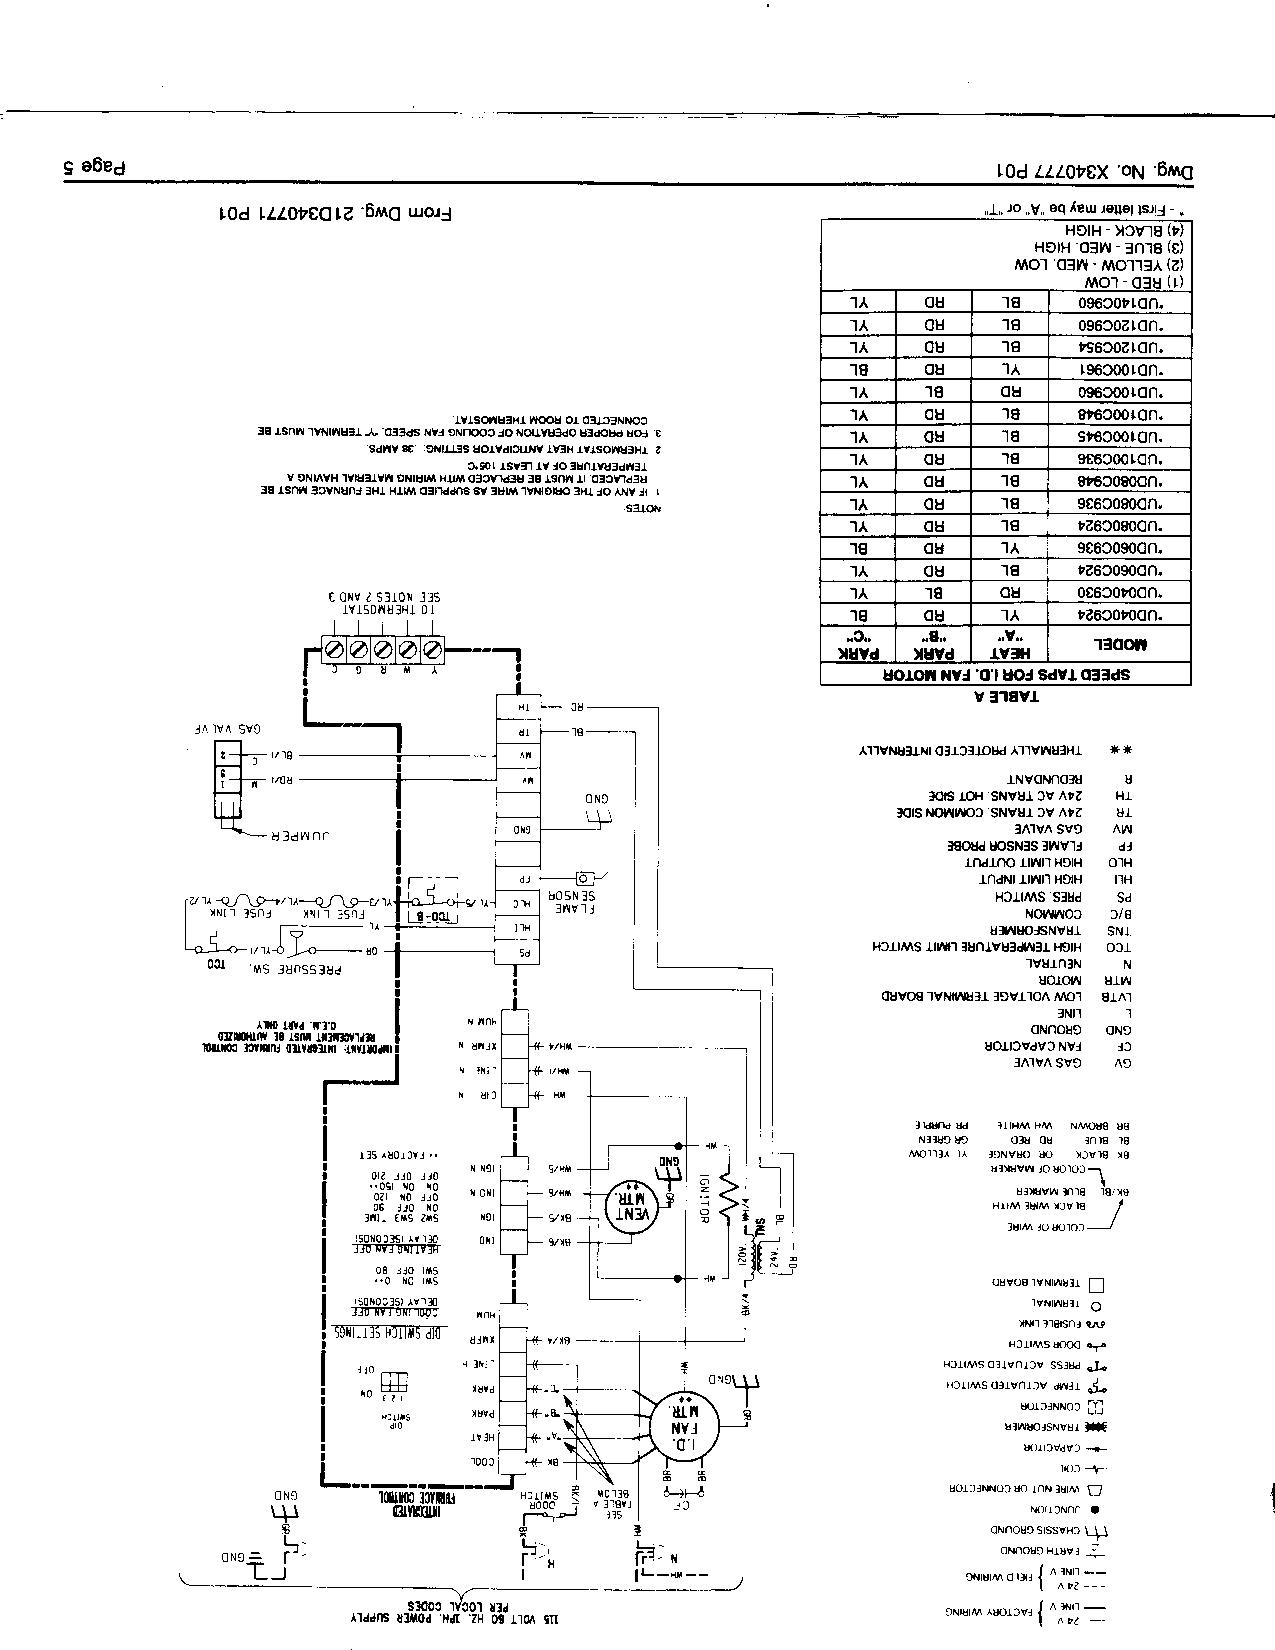 White Rodgers Module Wiring Diagram - 2004 Bmw 325i Fuse Box Diagram | Bege Wiring  Diagram | White Rodgers Module Wiring Diagram |  | Bege Wiring Diagram